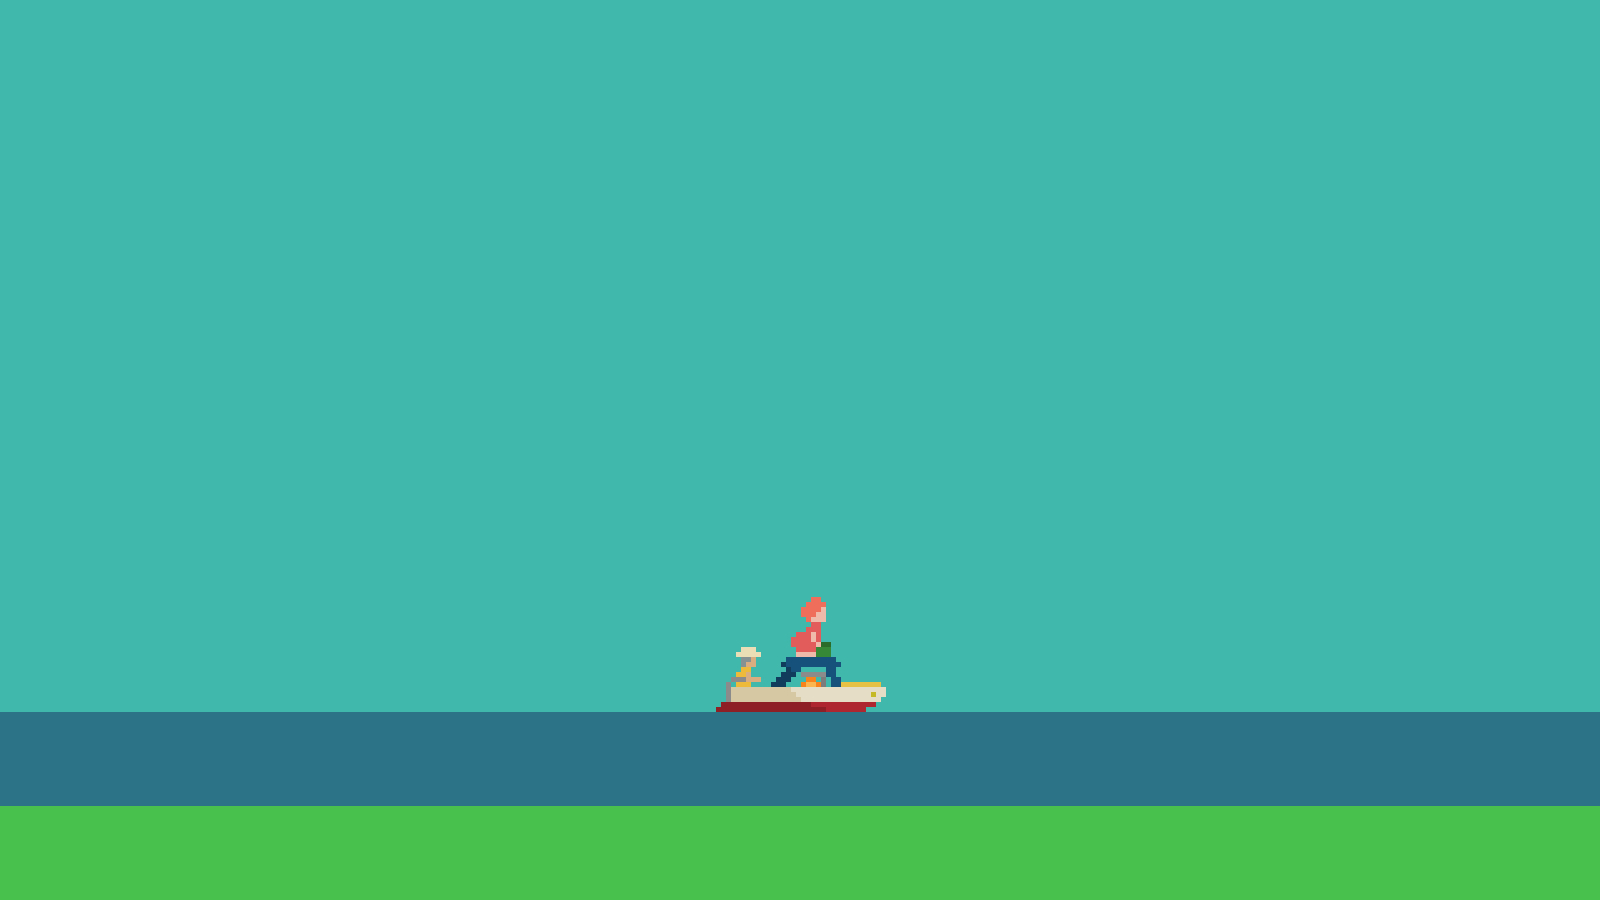 minimalistic Ponyo studio ghibli HD Wallpaper